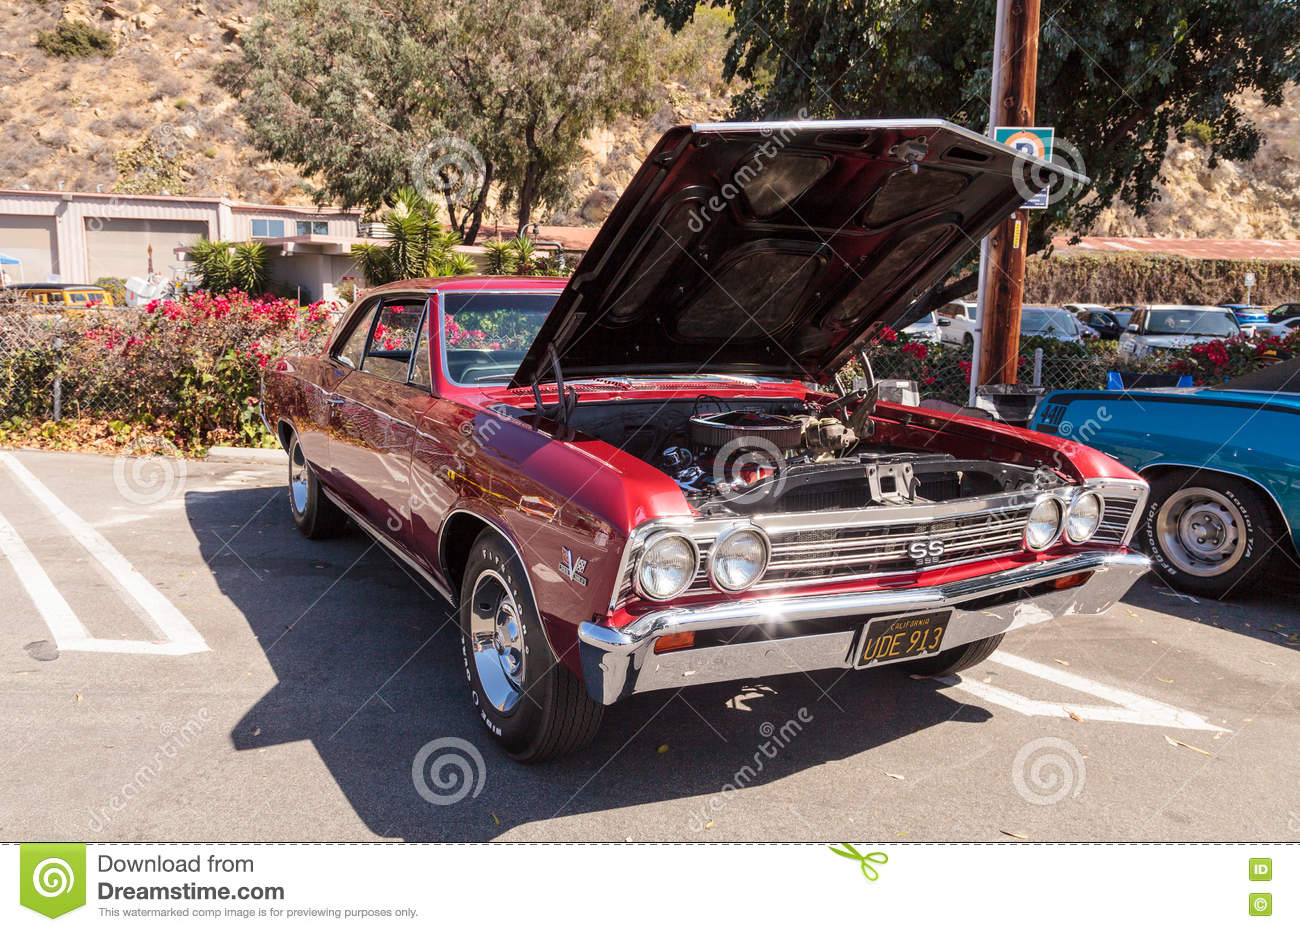 2016 Chevelle Ss >> Red 1967 Chevy Chevelle Ss Coupe Editorial Stock Photo